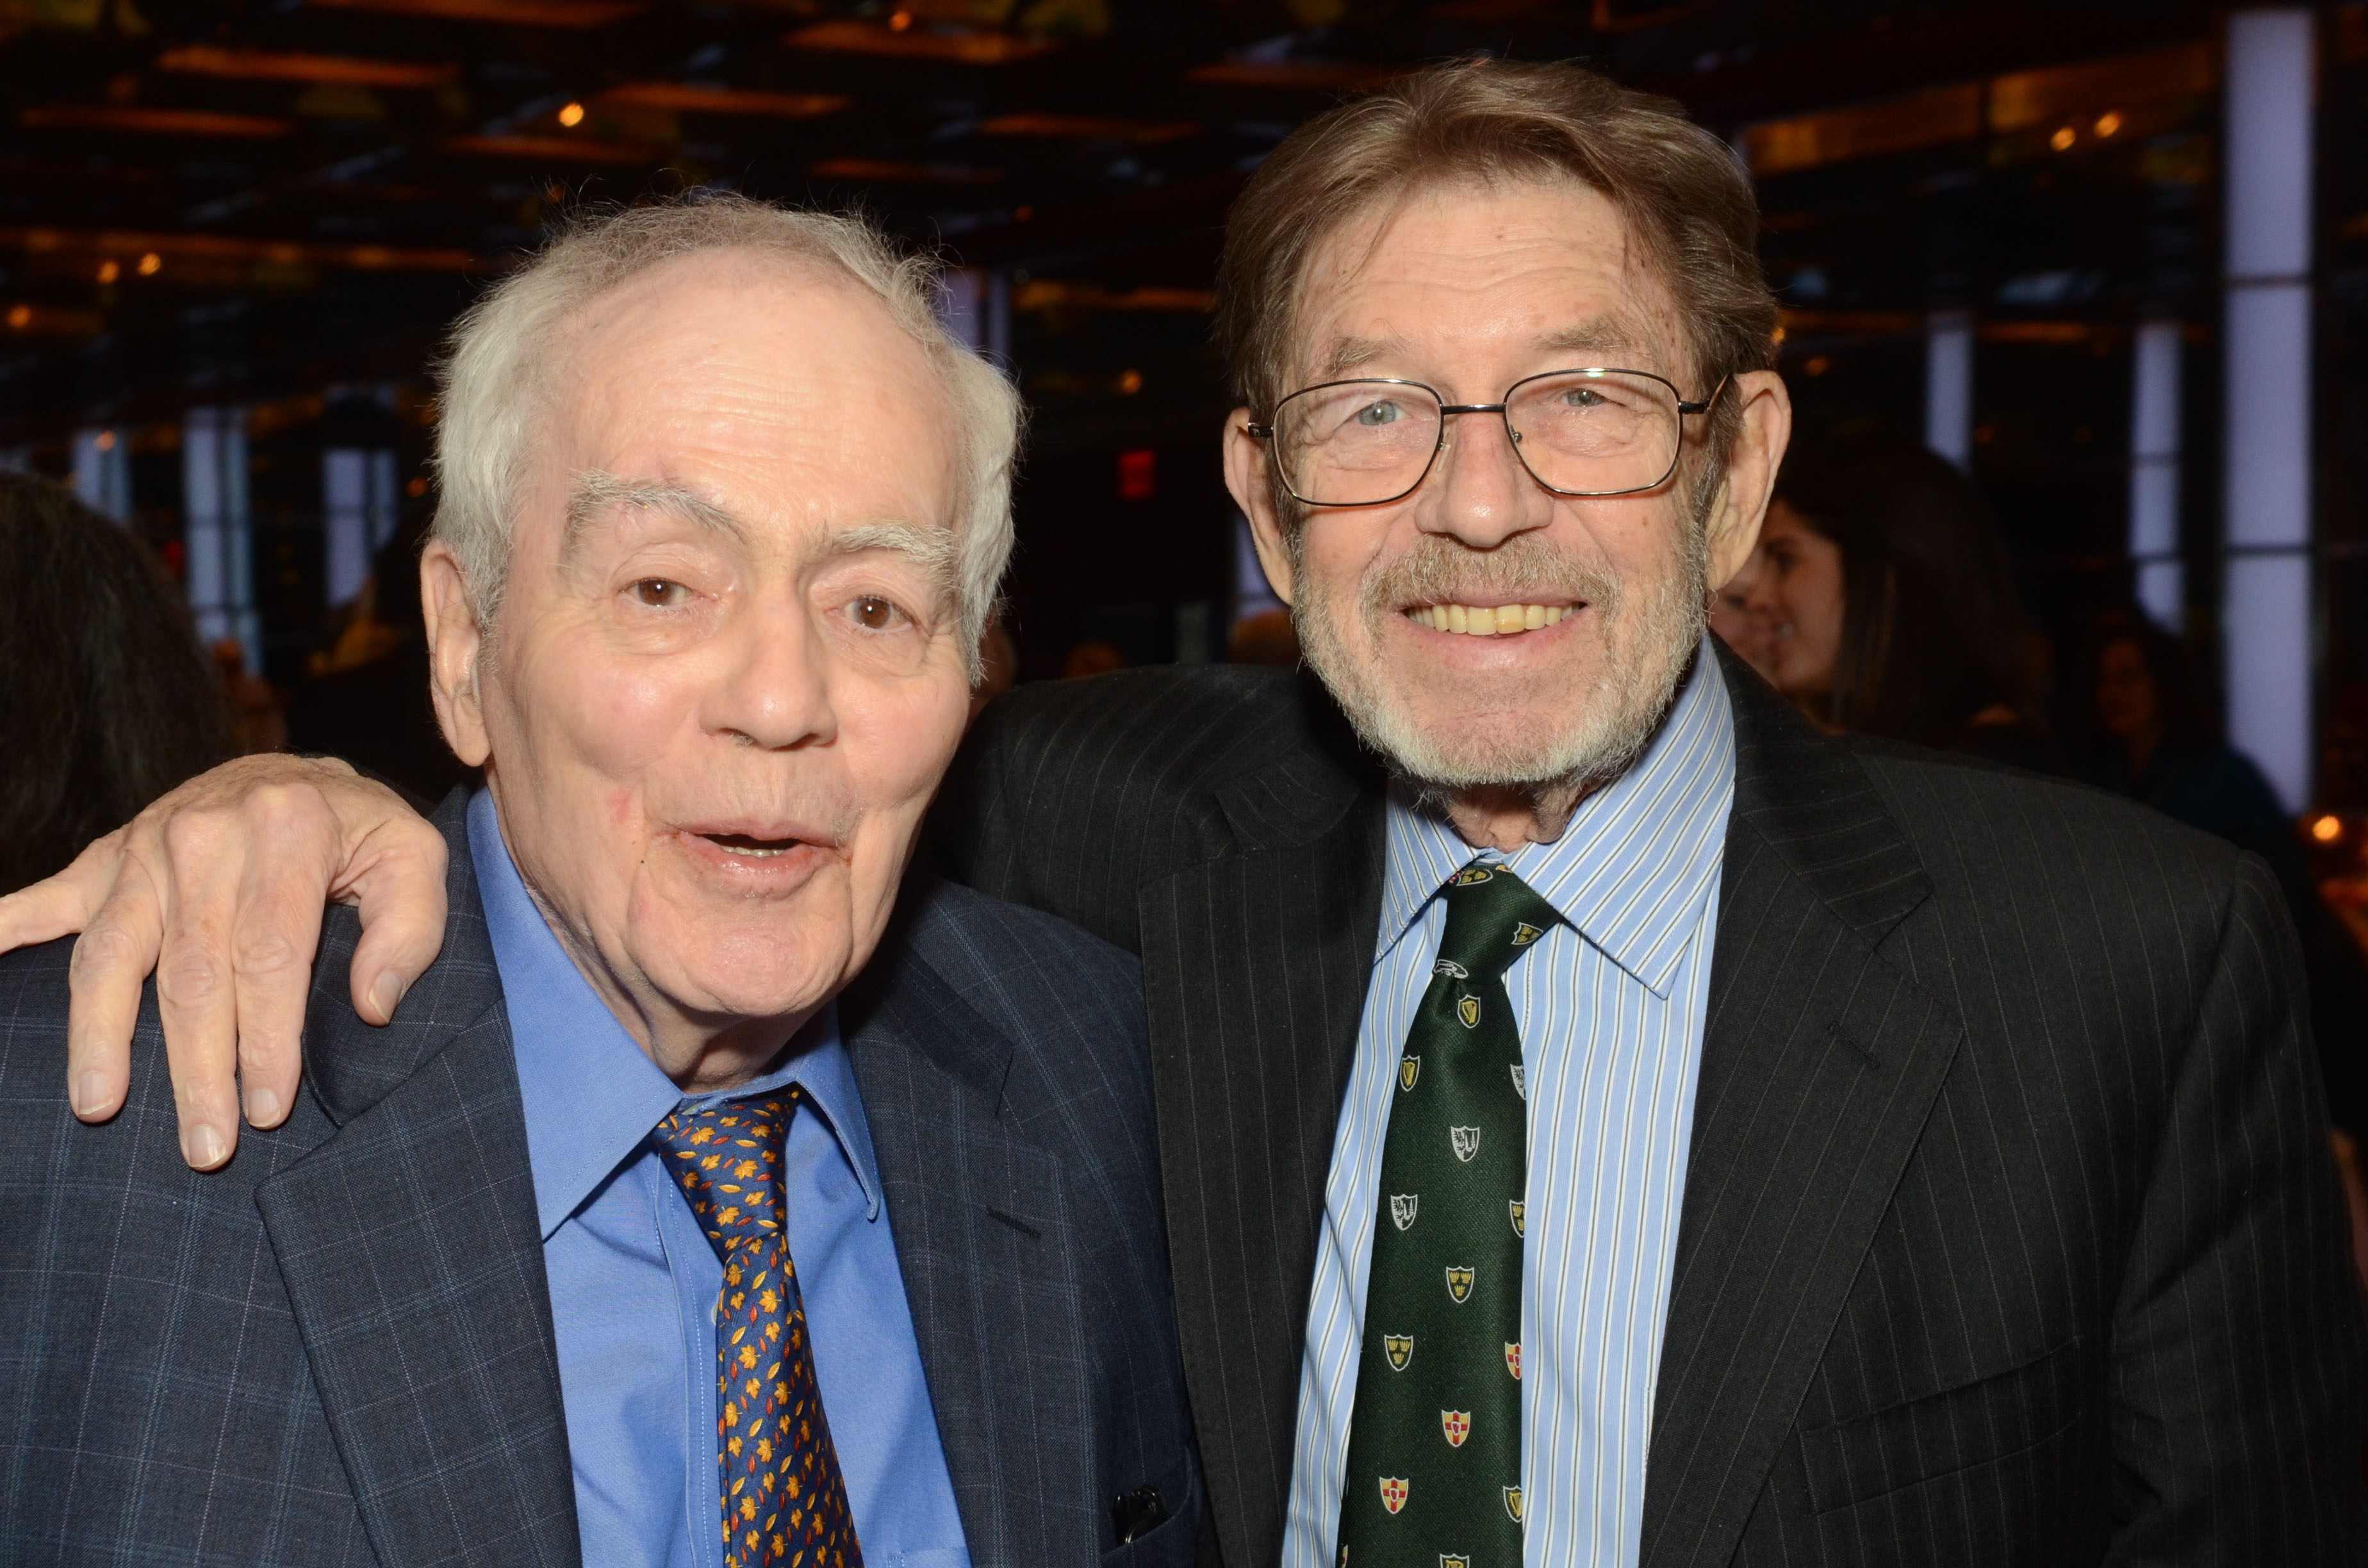 Breslin and Pete Hamill, another reporter credited with founding New Journalism, at the Glucksman Ireland House NYU Annual Gala, February 25, 2014 (Photos: James Higgins)